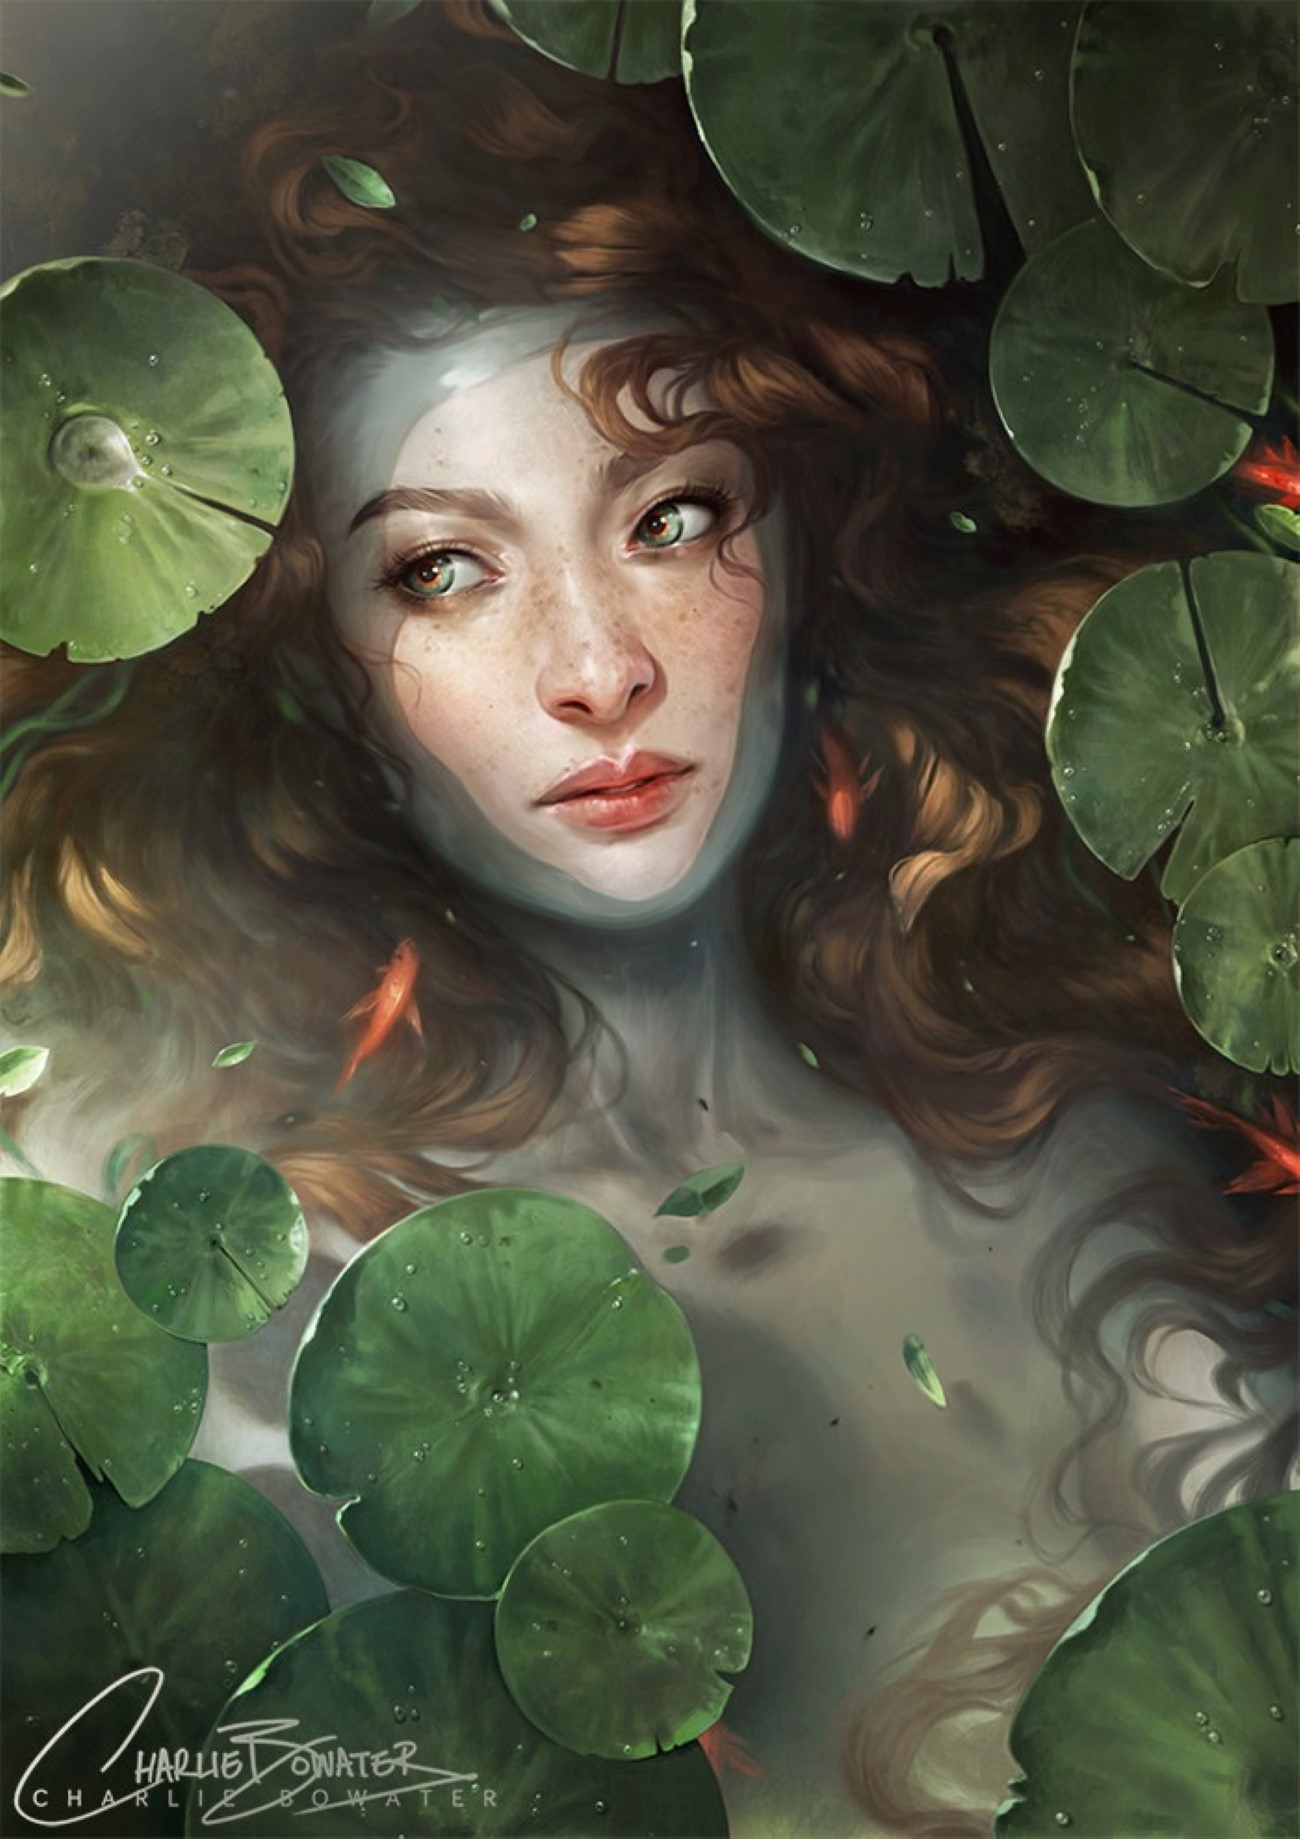 Charlie Bowater | Digital Painting & Art Inspiration on Paintable.cc